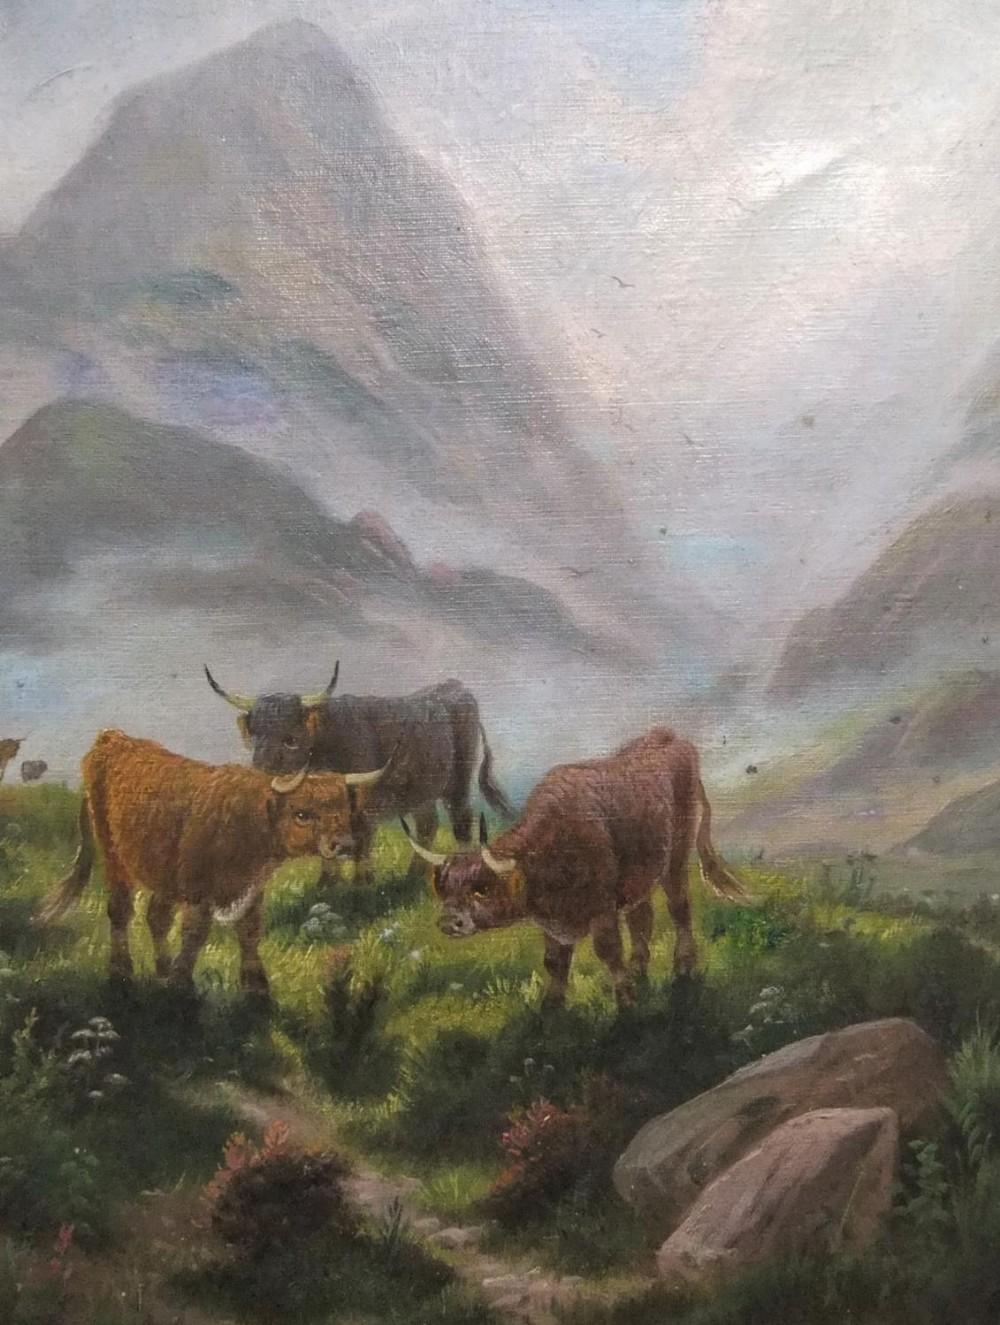 """Early 20thC oil on canvas """"Cattle in Highland landscape by E HEATON, unframed 51 x 38cm - Image 2 of 4"""